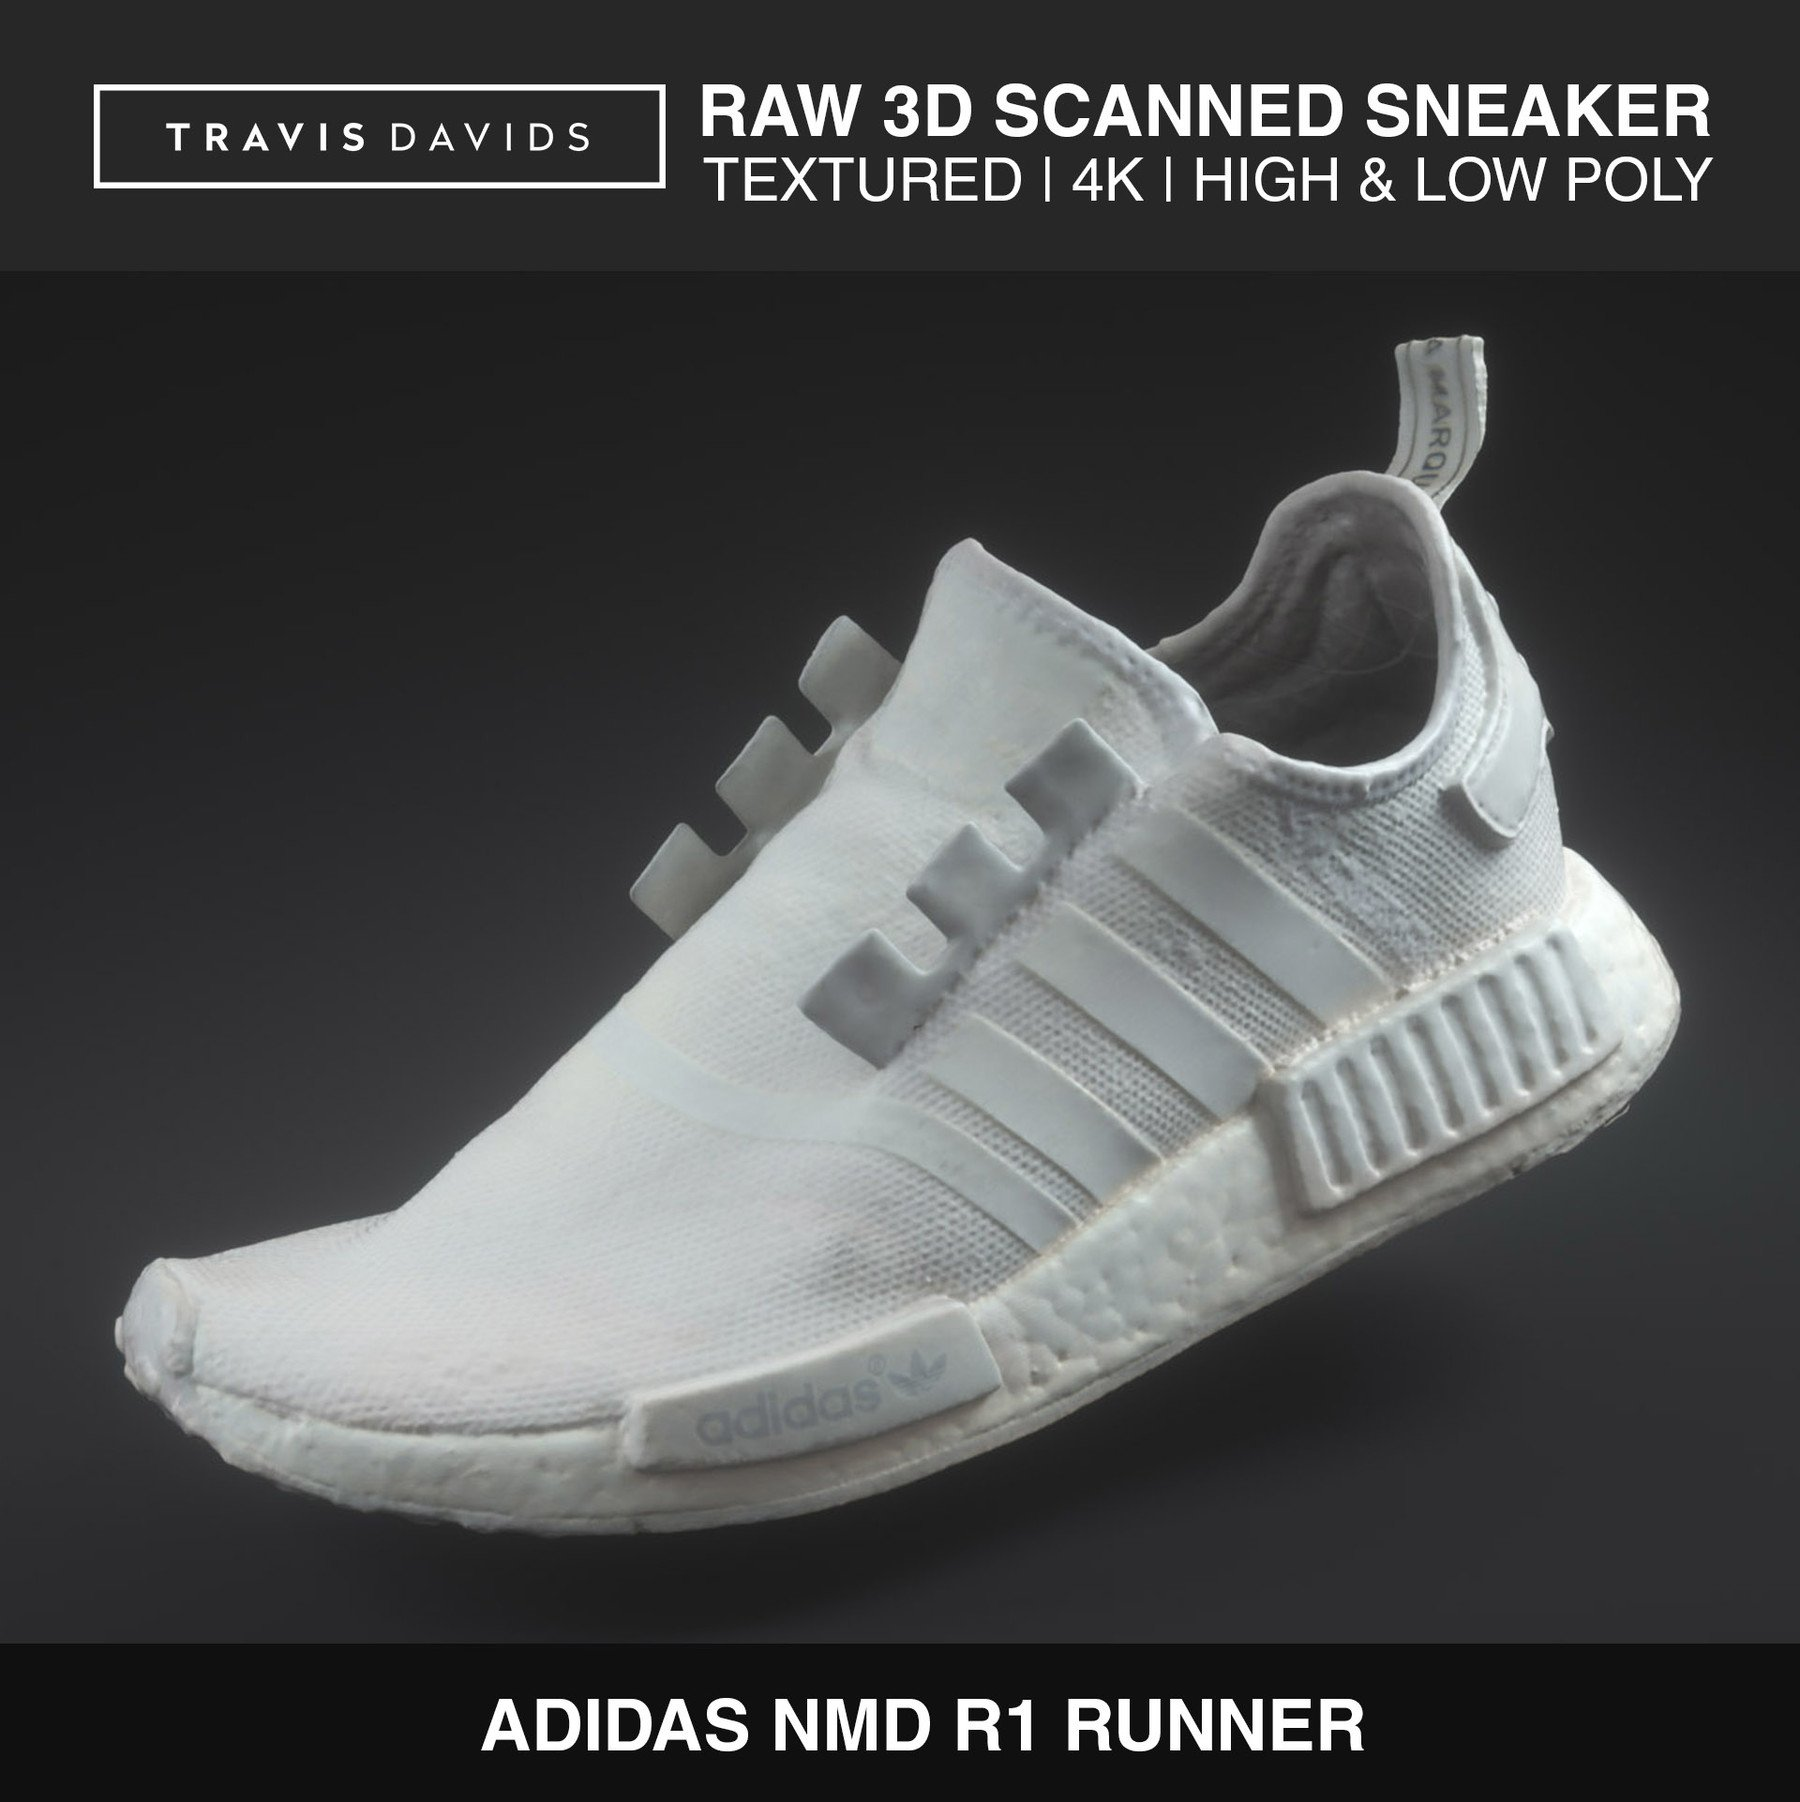 Adidas%20nmd%20r1%20runner solo